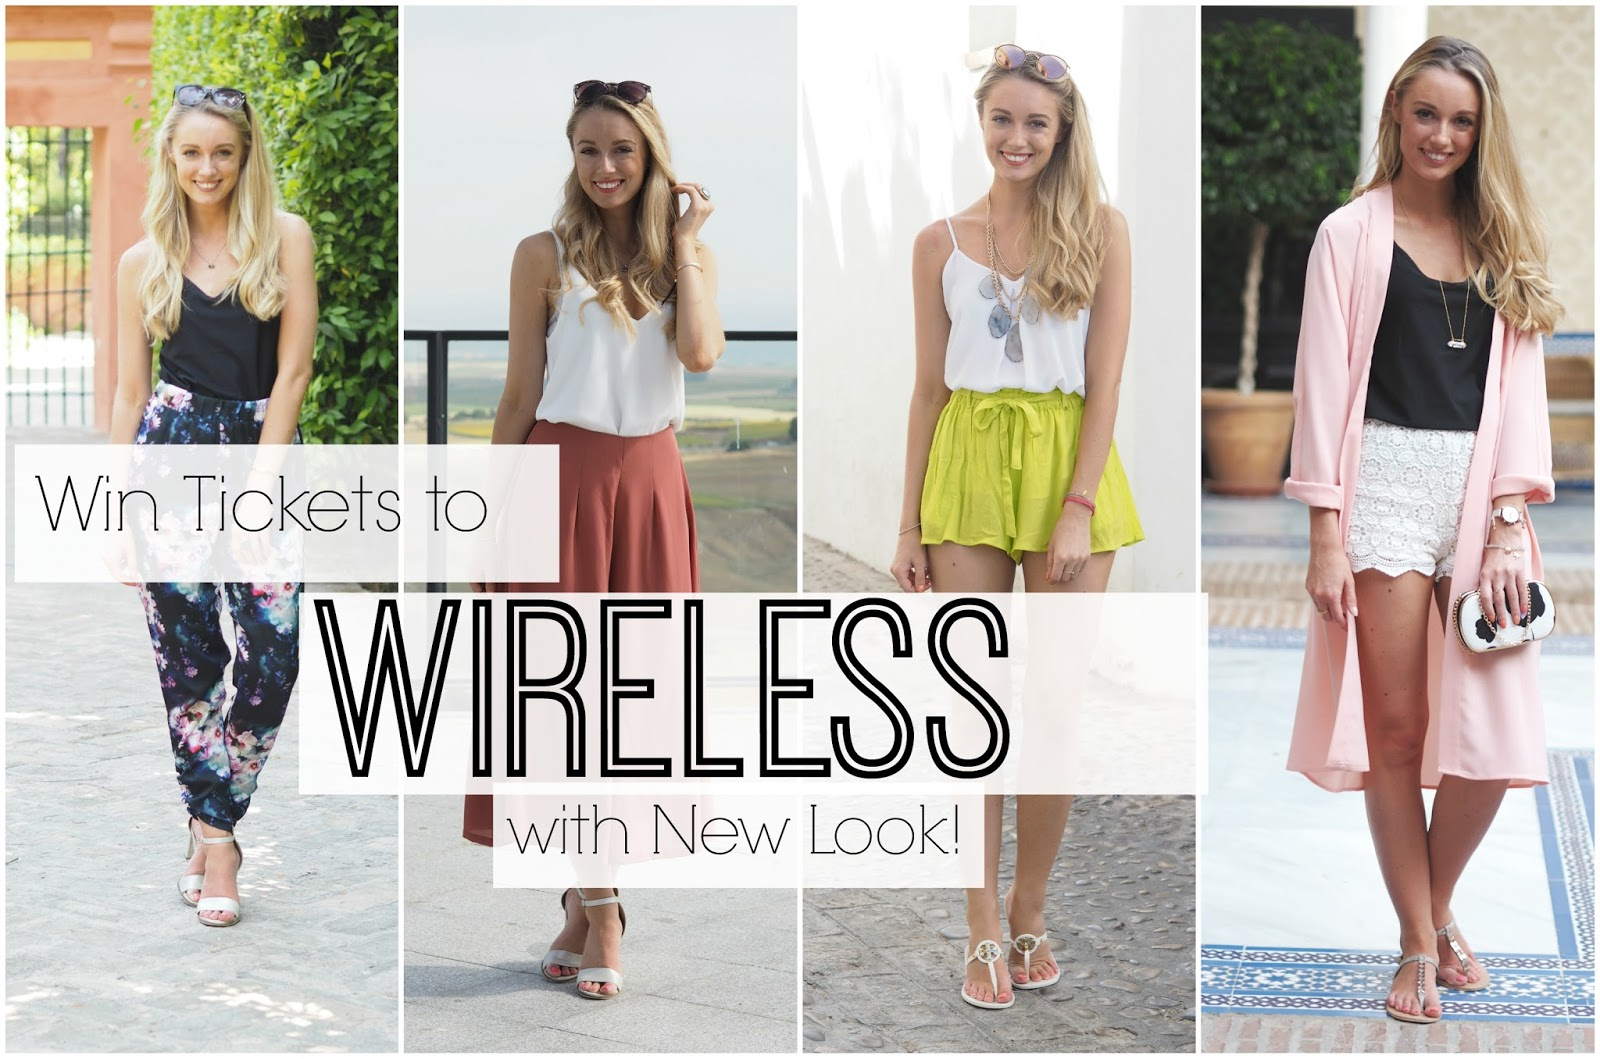 WIN Tickets to Wireless with New Look.jpg